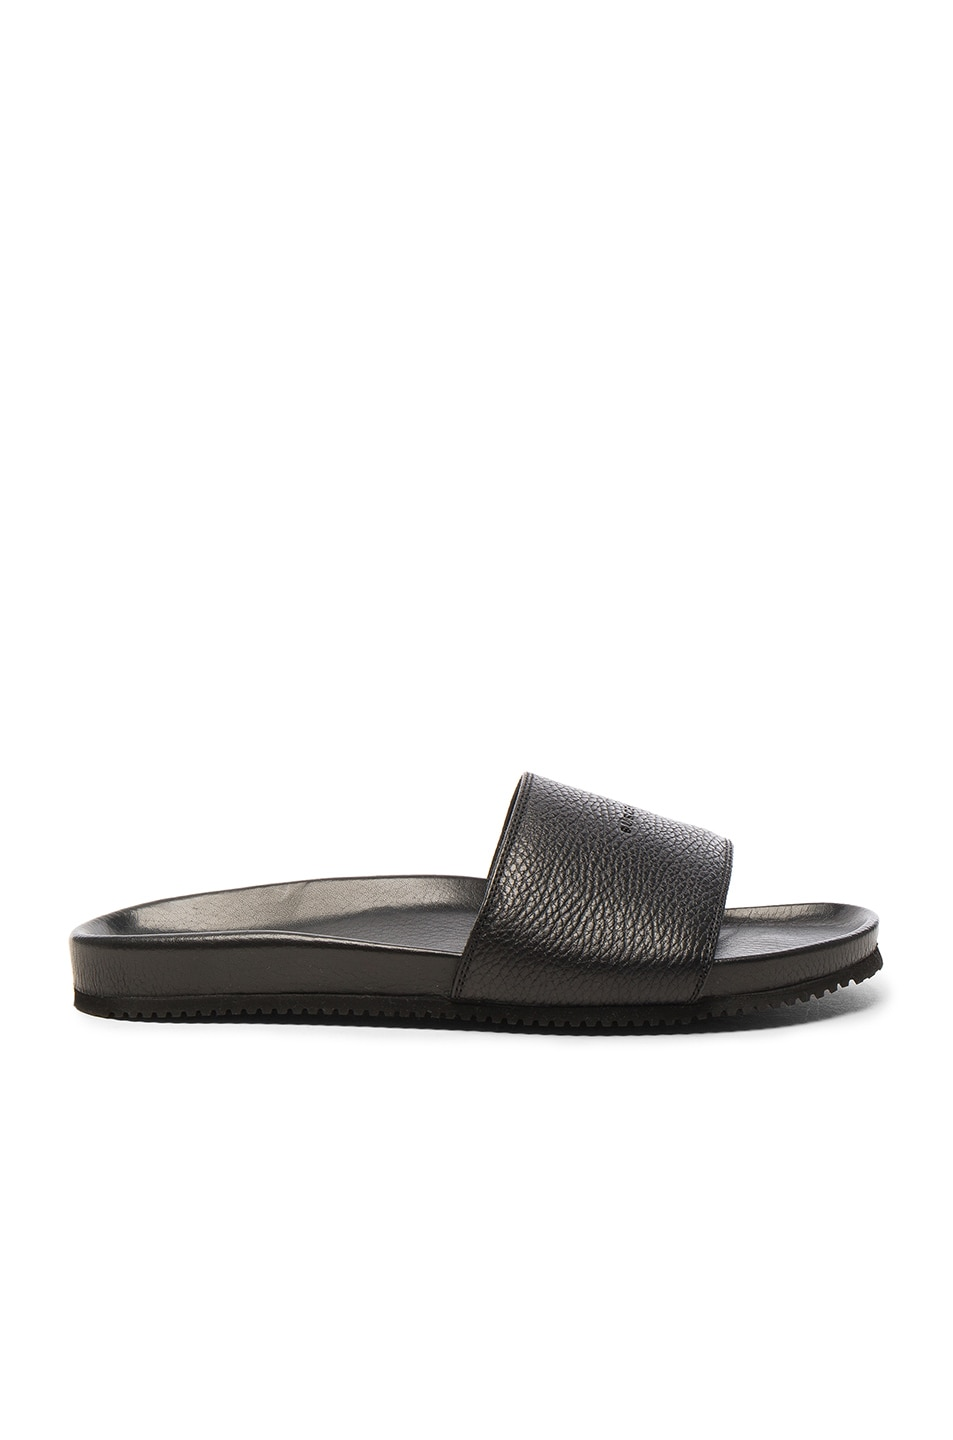 Image 2 of Buscemi Leather Classic Slide Sandals in Black